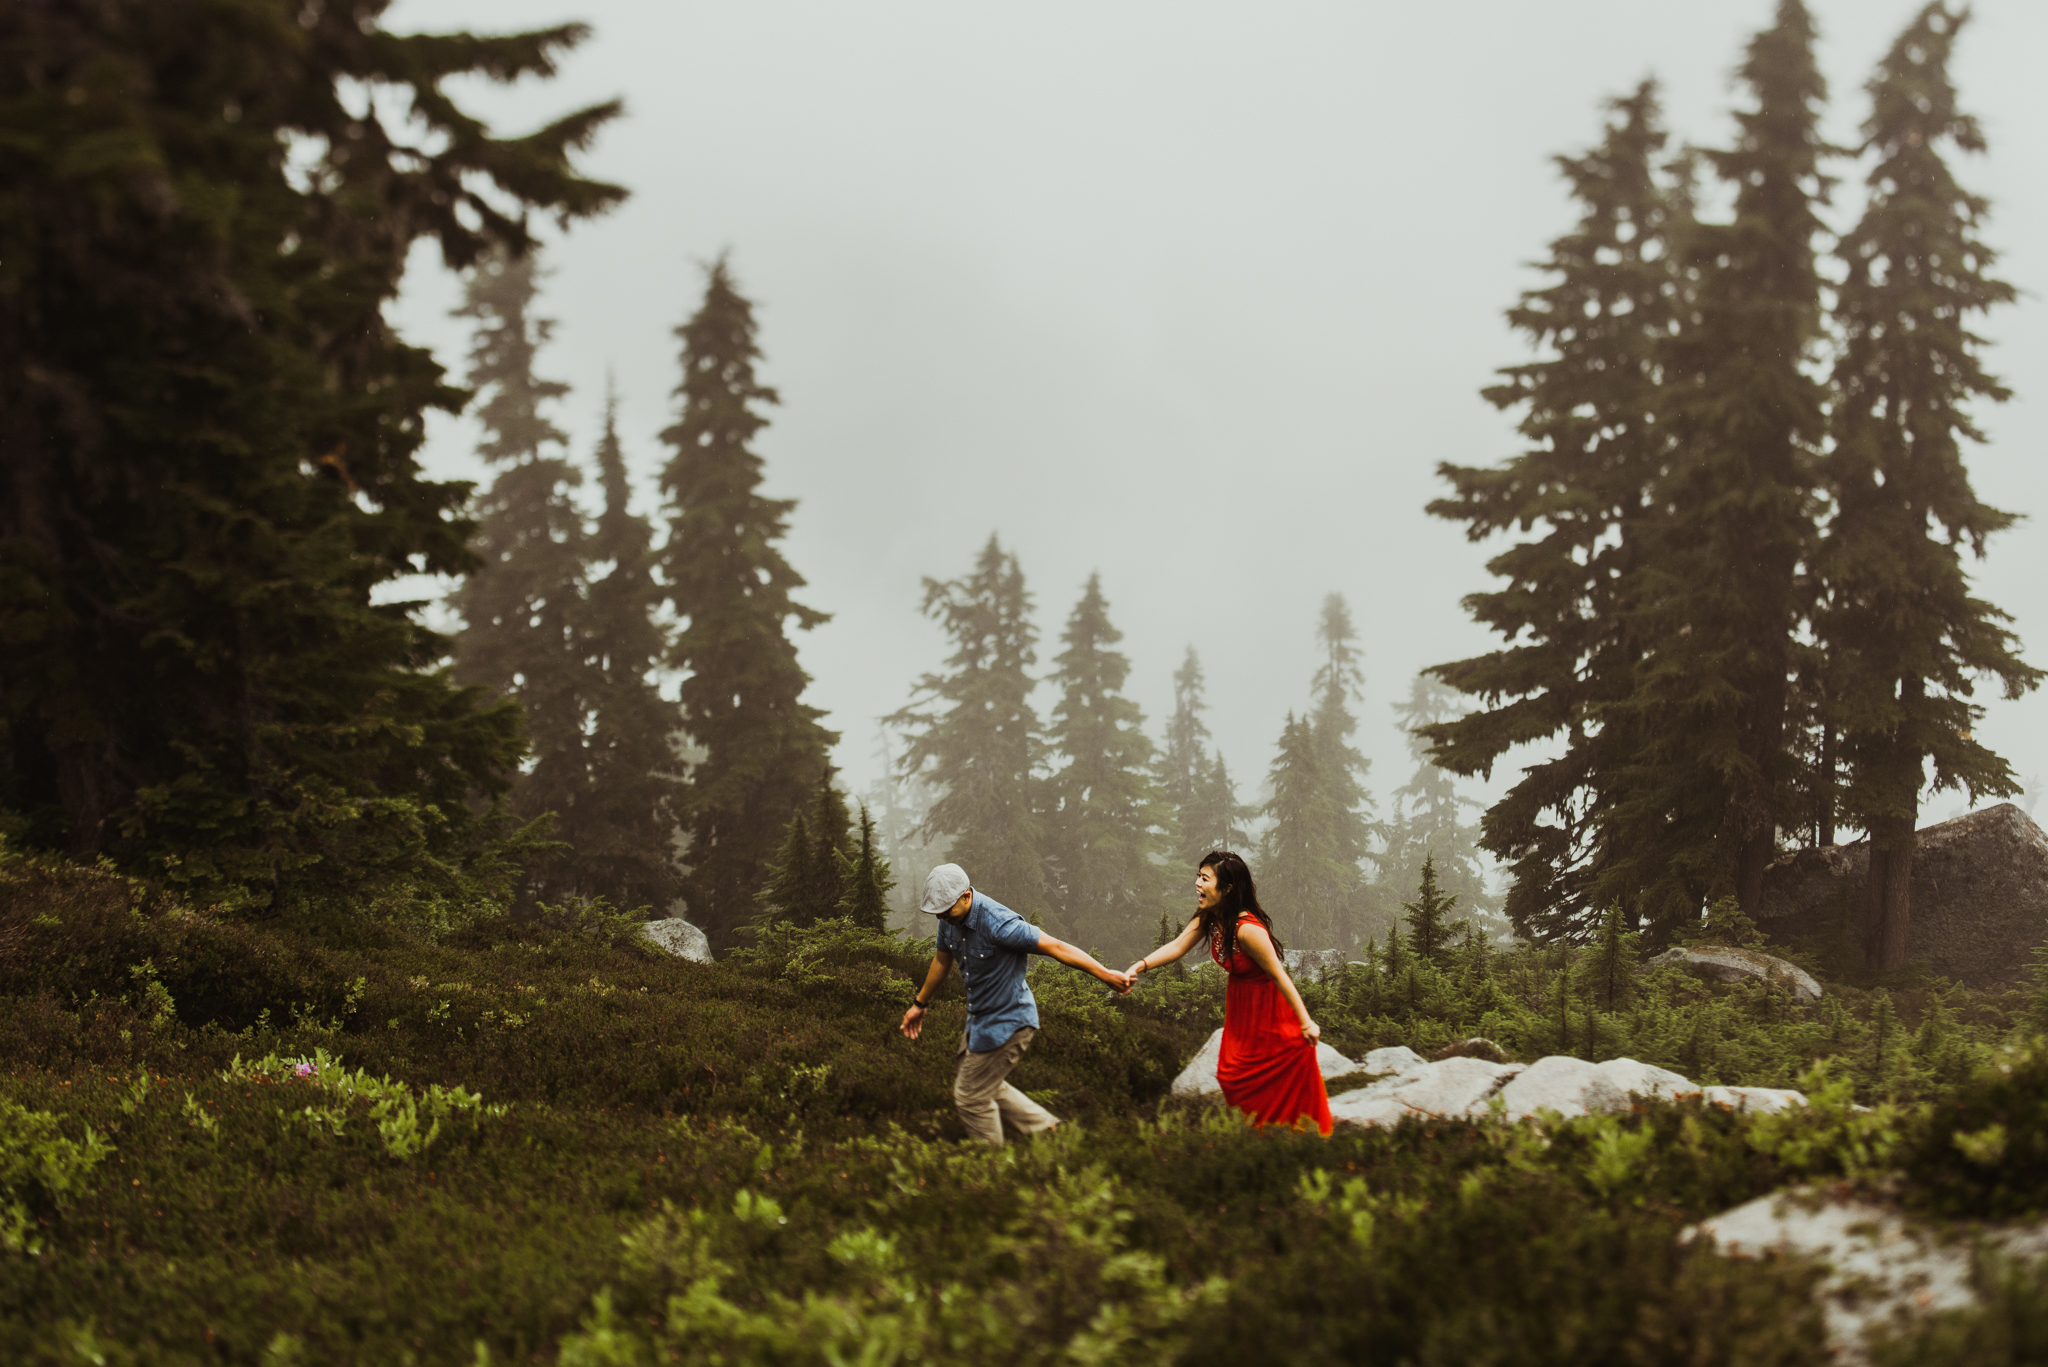 ©Isaiah-&-Taylor-Photography---Hidden-Lake-Cascade-Mountains-Engagement,-Washington-079.jpg